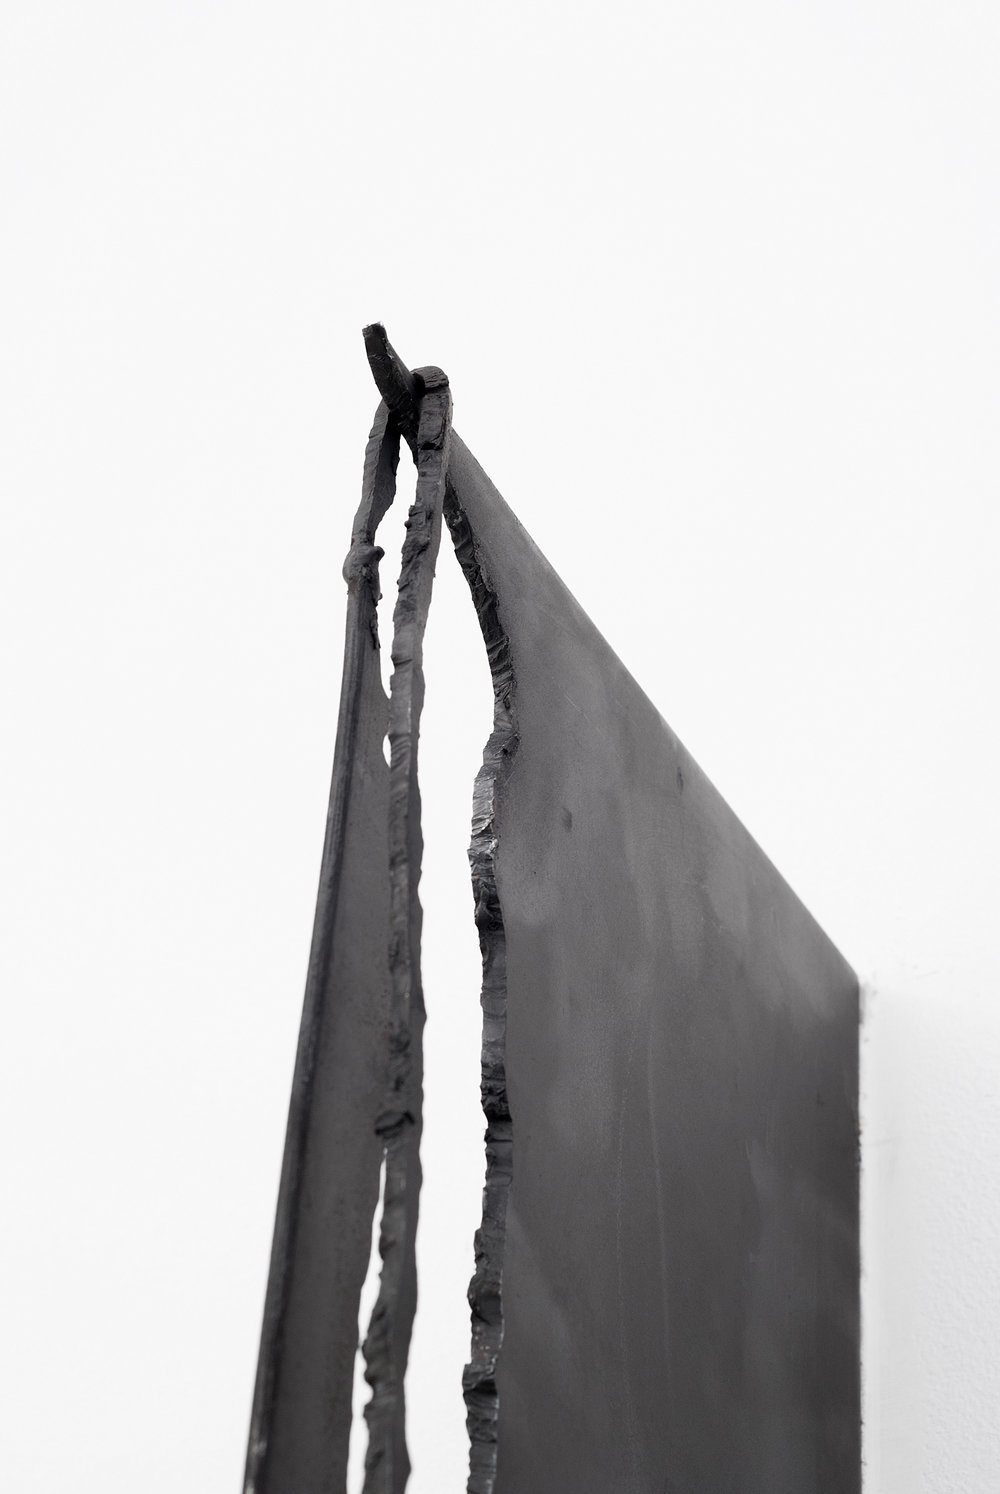 Cascade (Detail), Enamel and steel with graphite and nickel plating, 70 X 10 inches, 2013